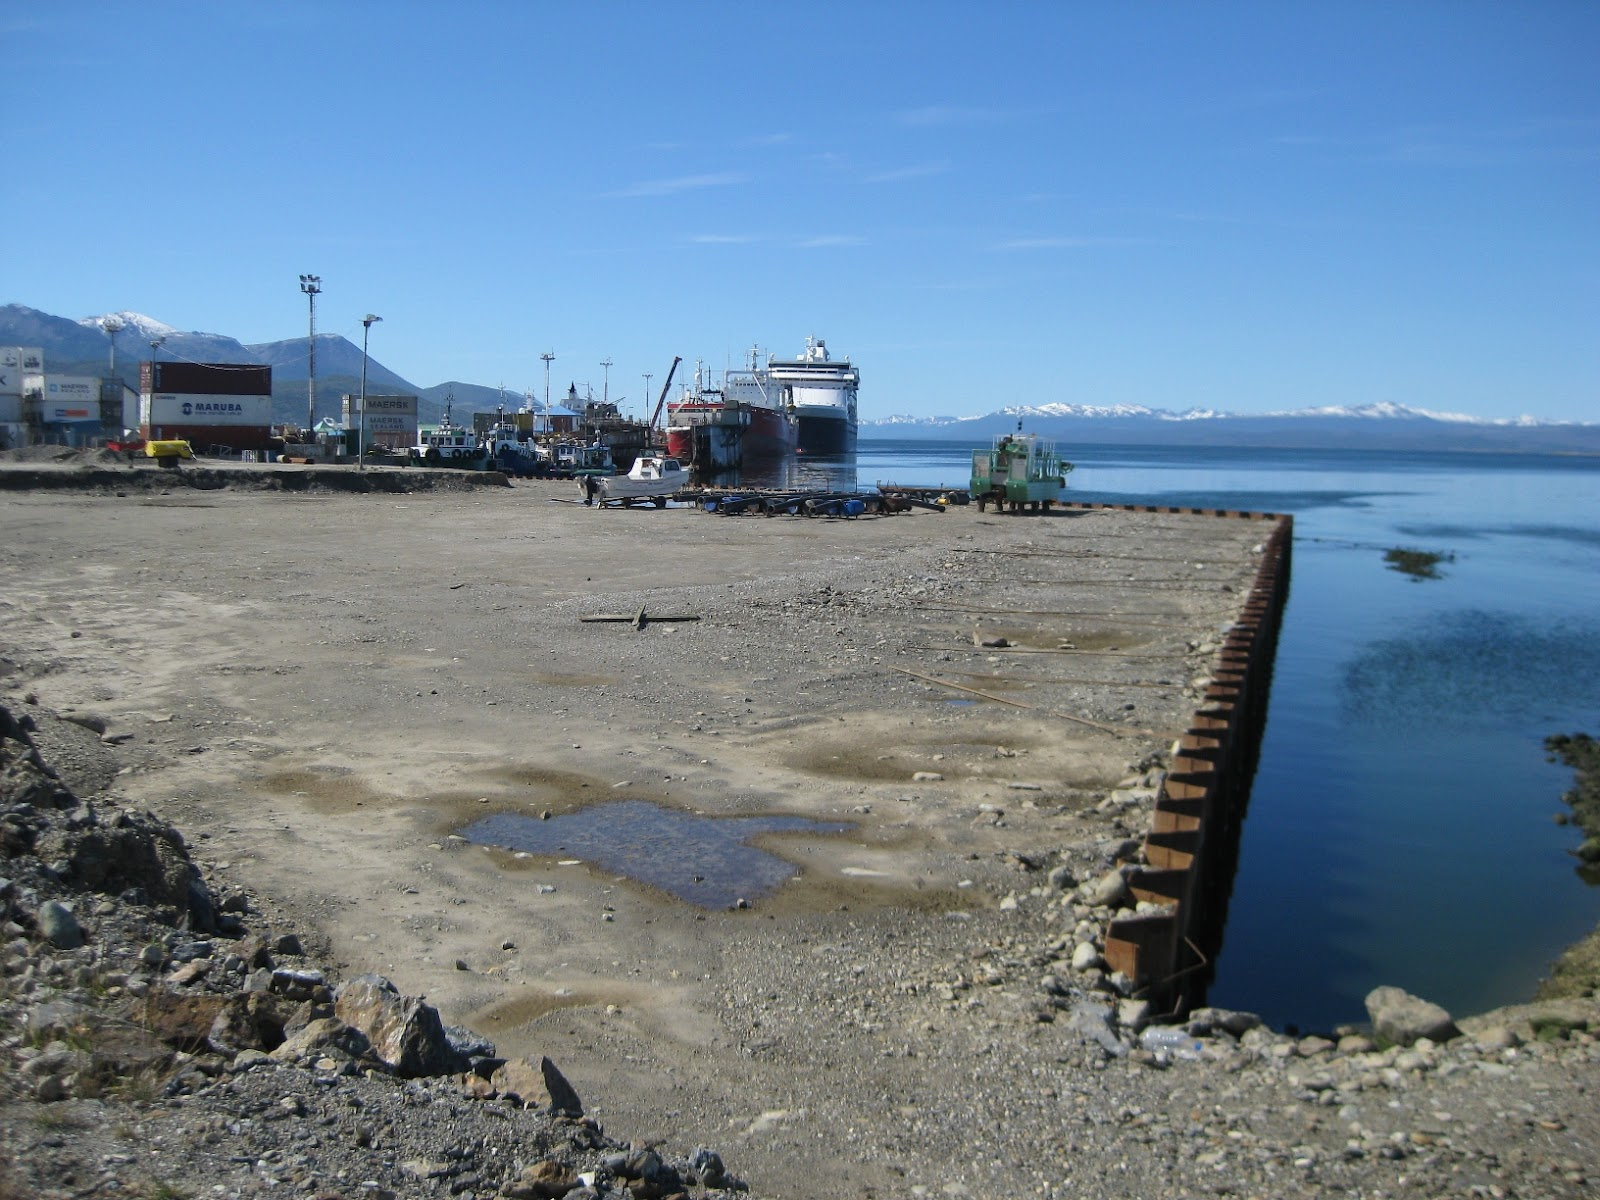 Ports companies are always stealthily reclaiming land